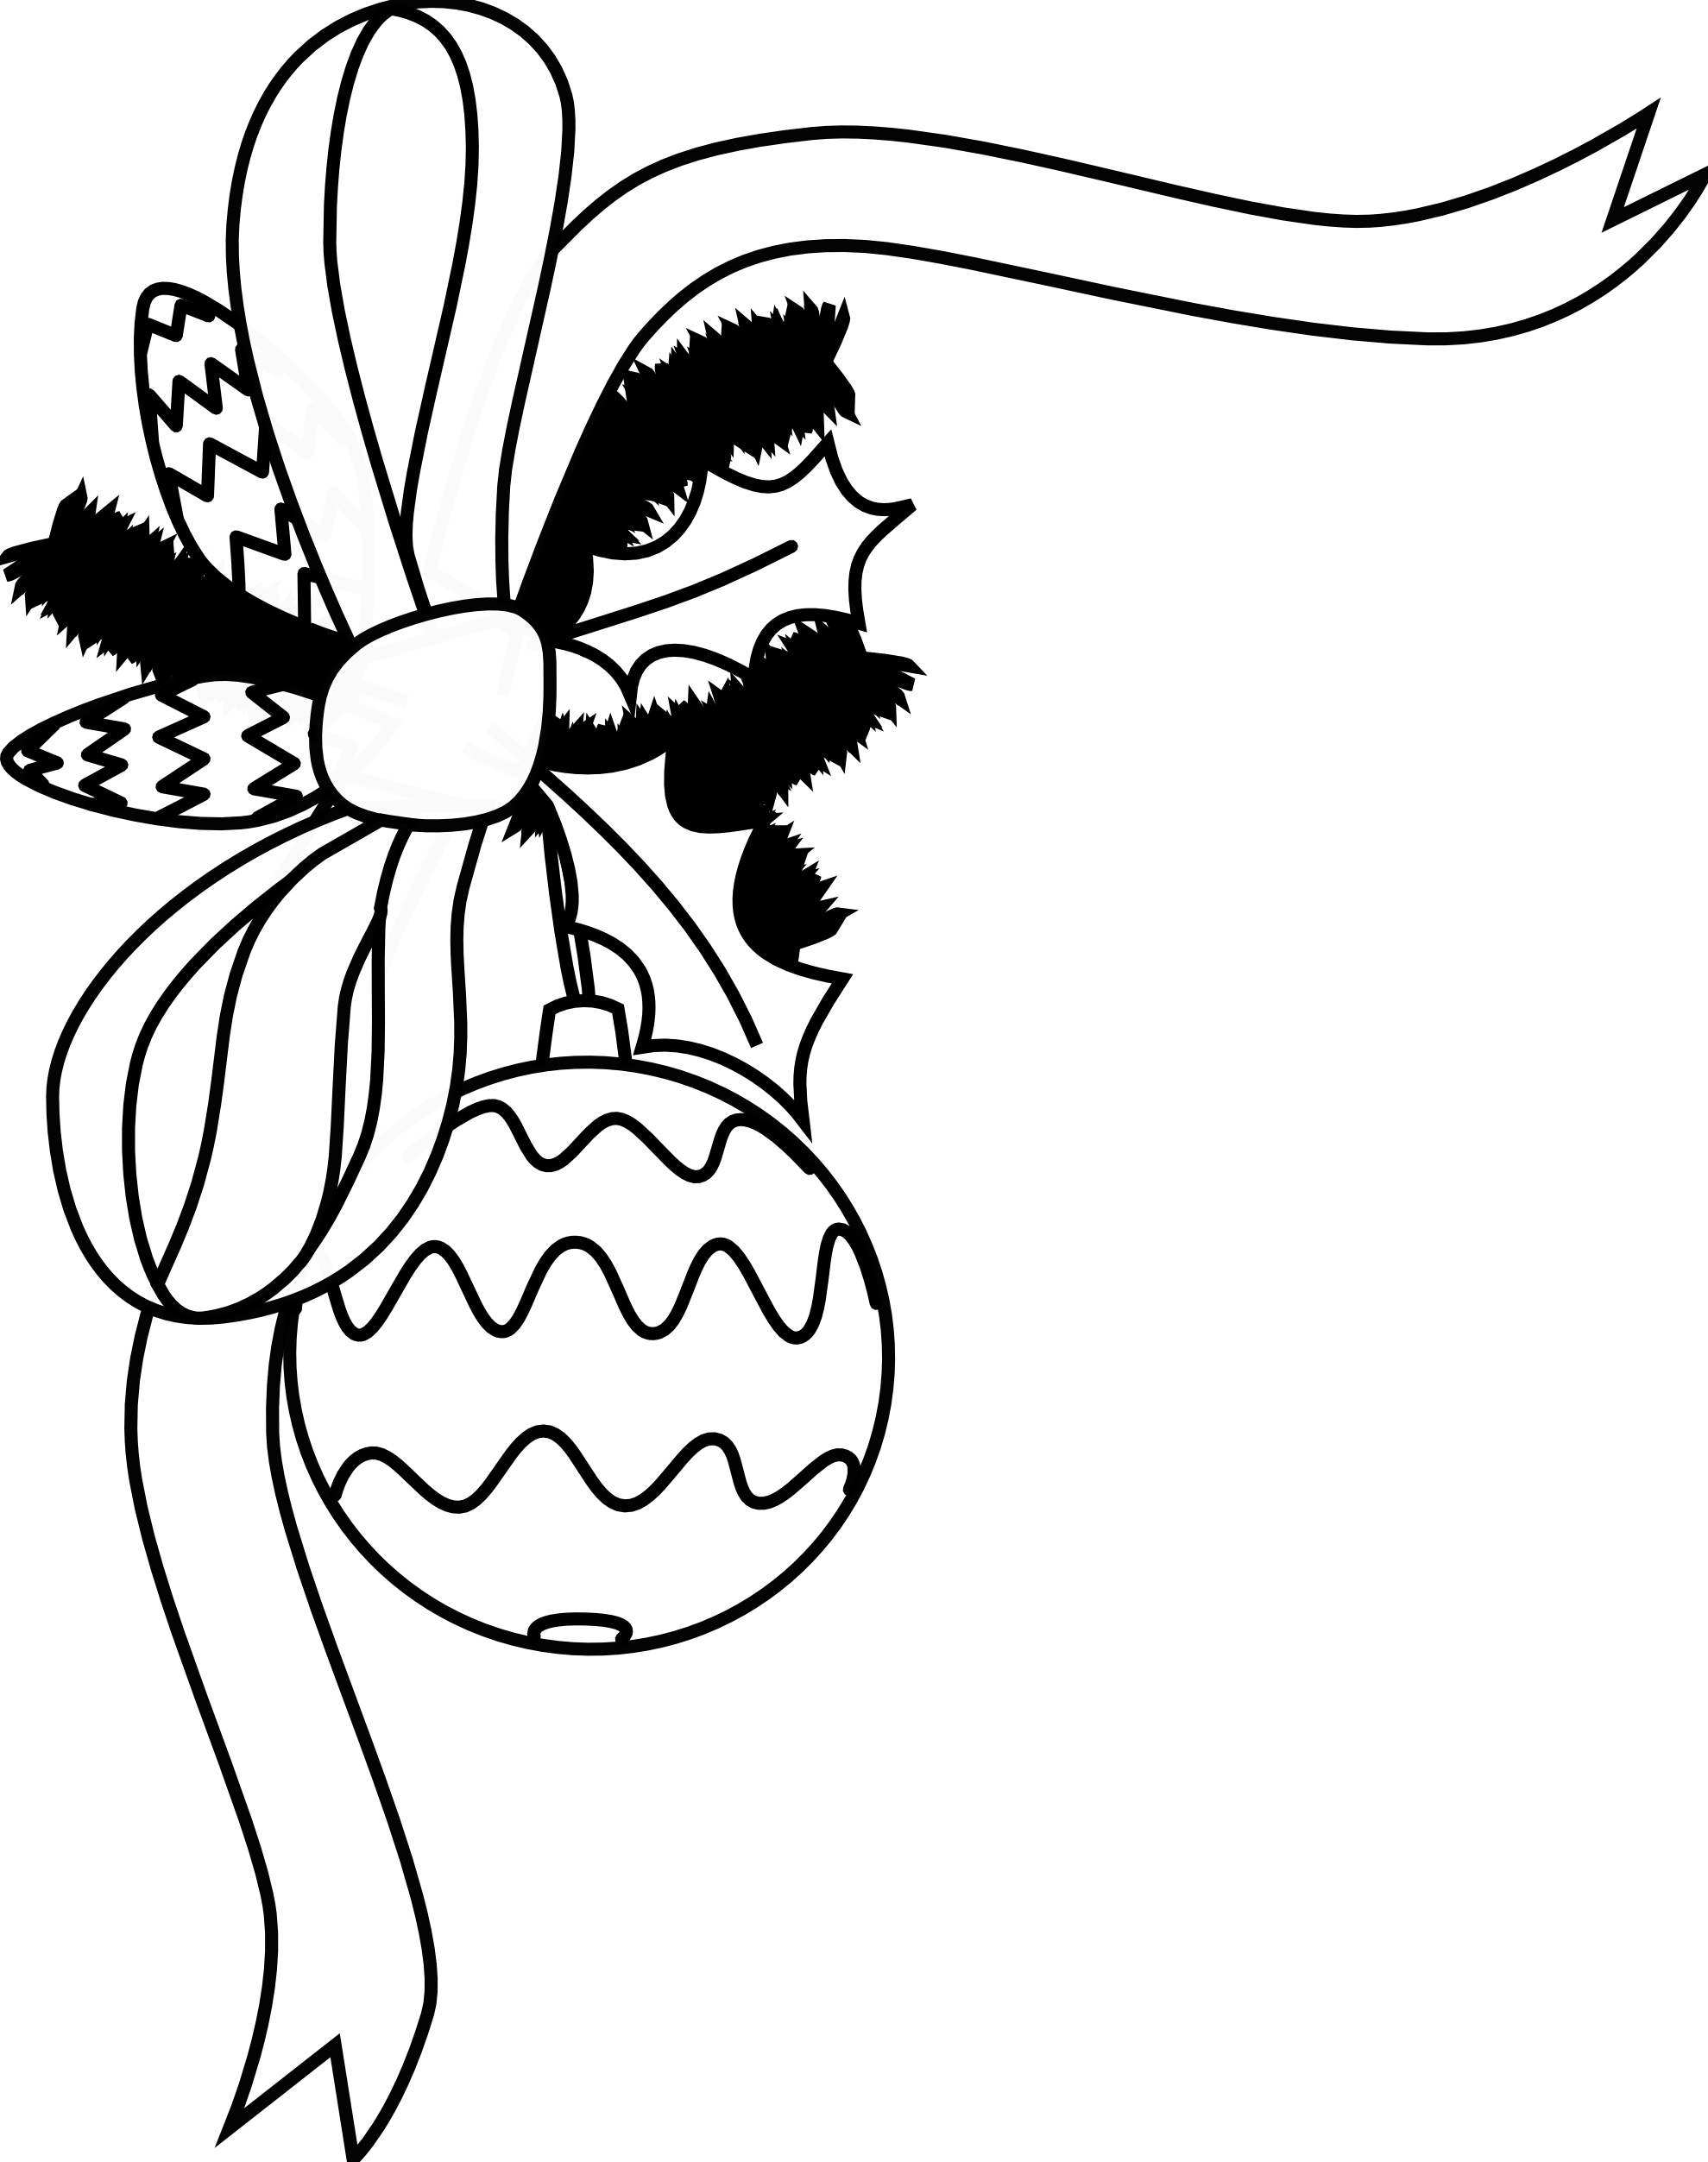 Black And White Holiday Clip Art - Cliparts.co